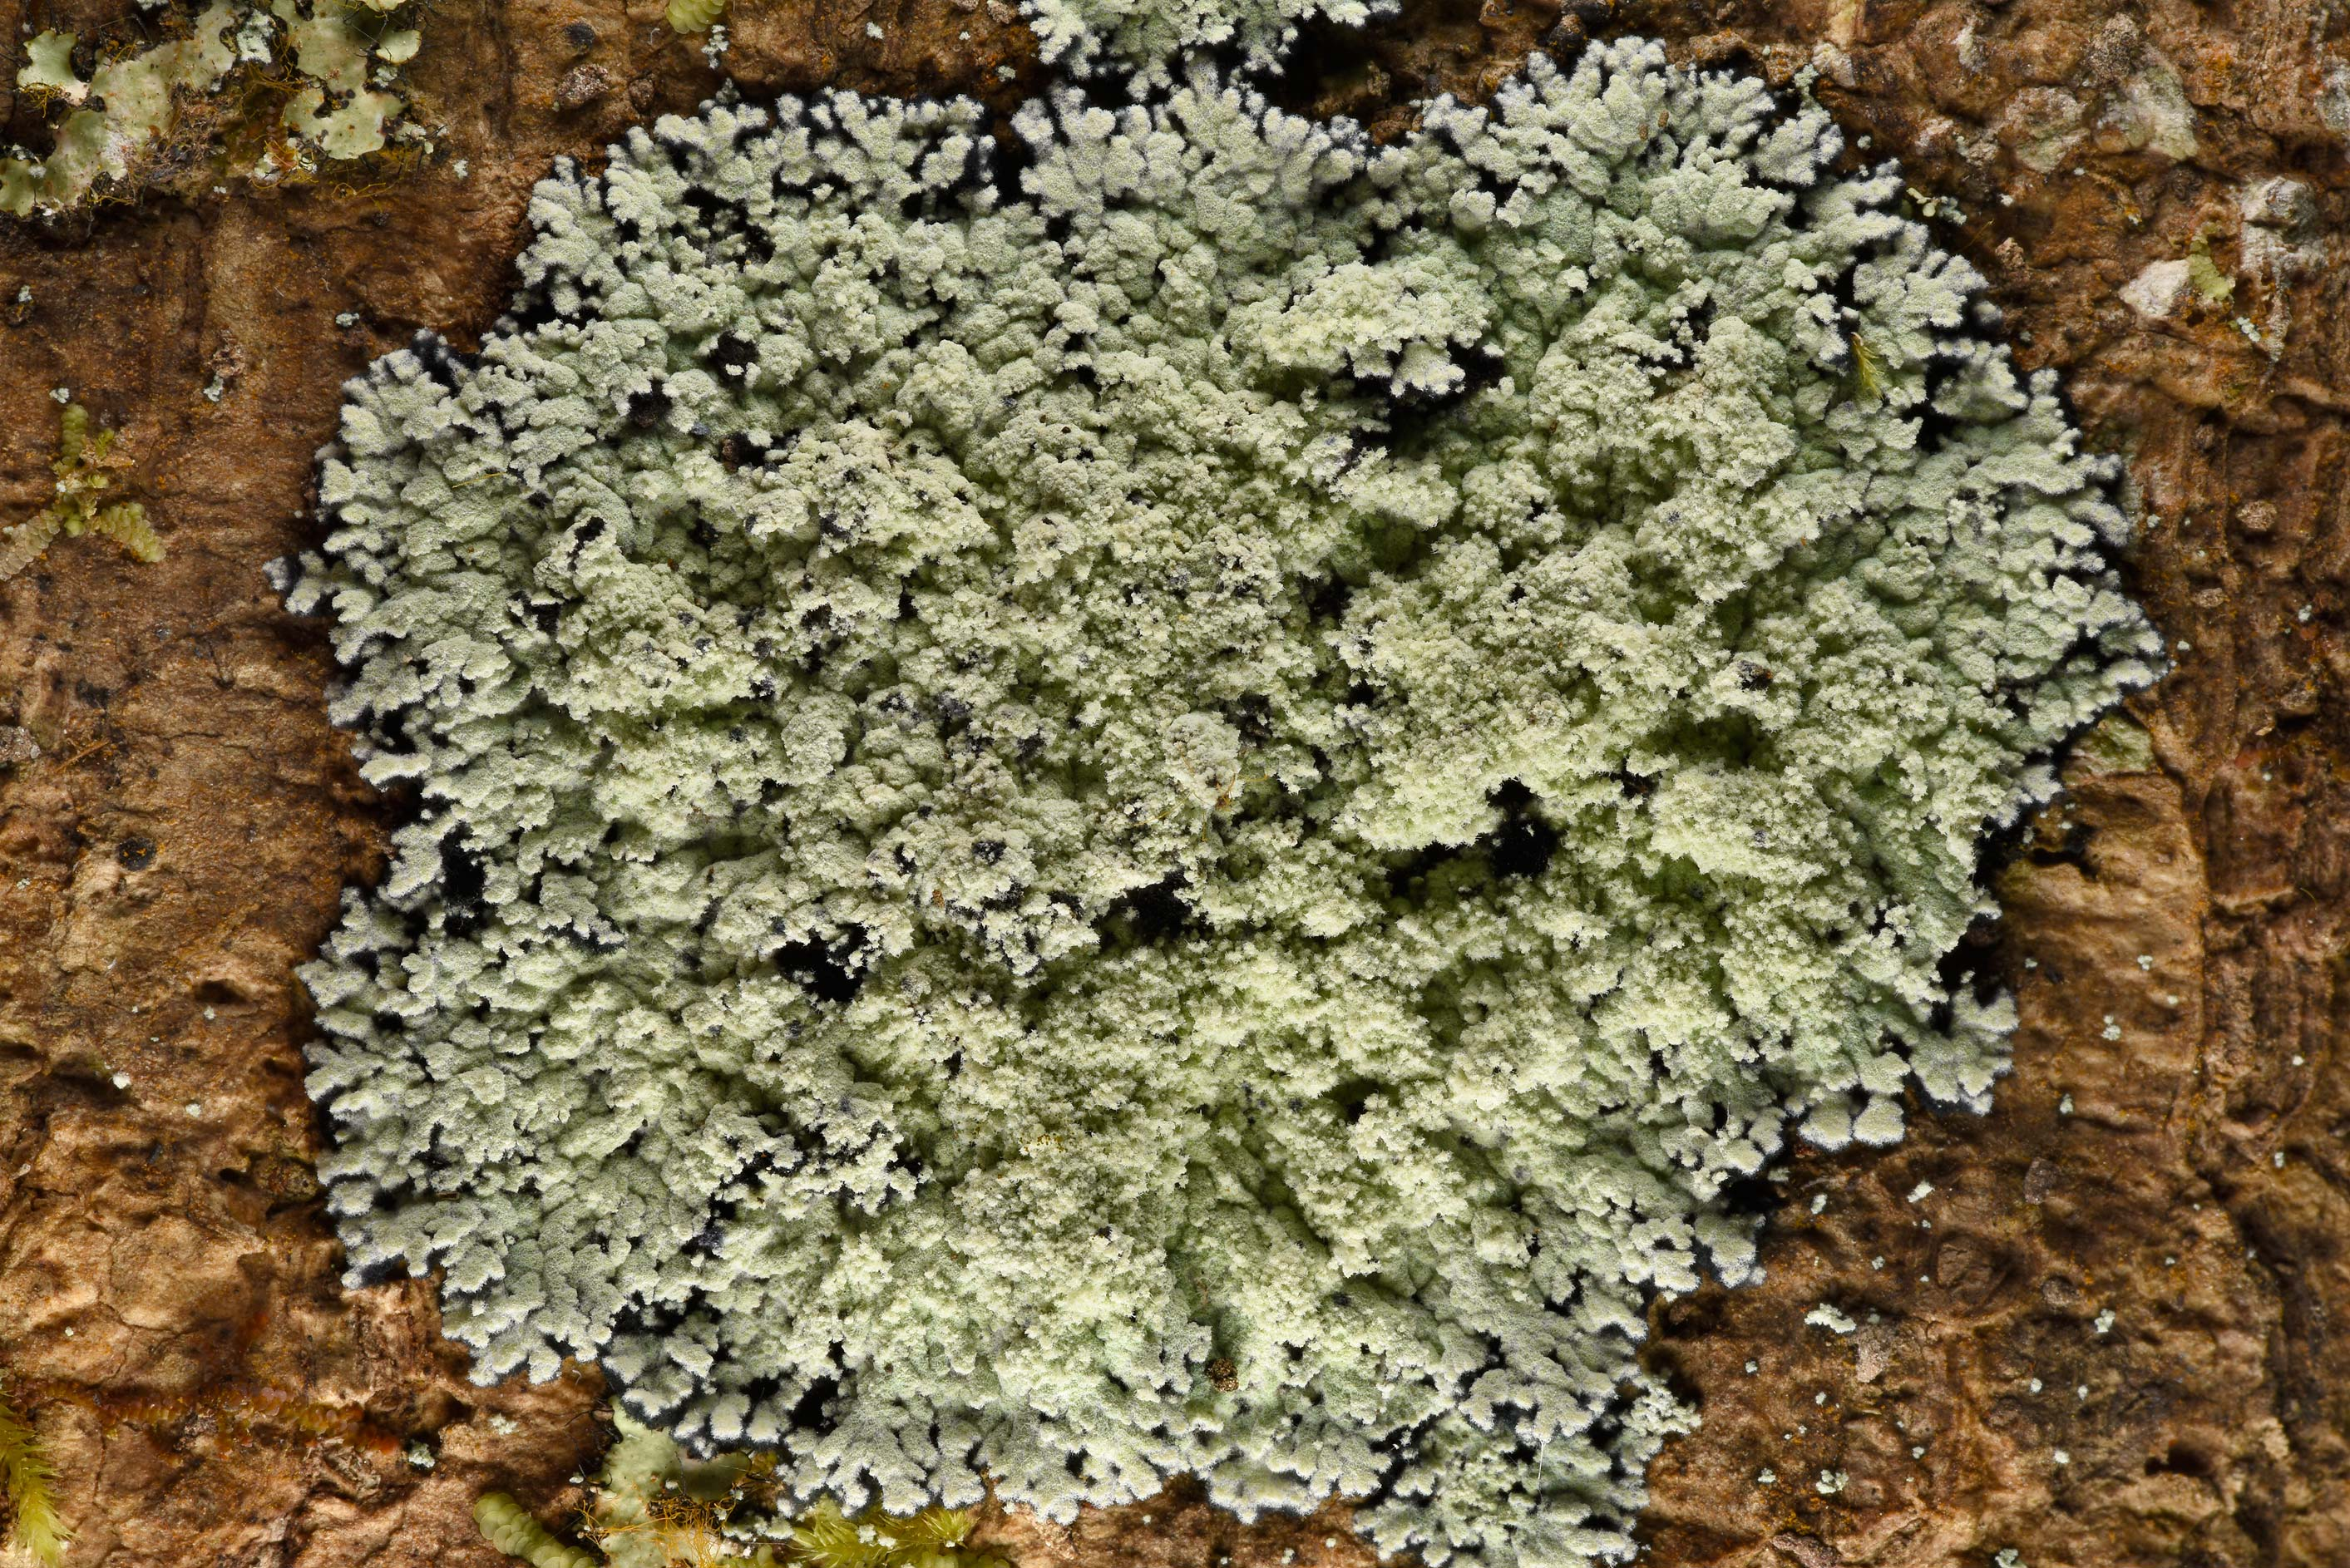 Lobed cotton lichen (Crocynia pyxinoides) on tree...National Forest. Shepherd, Texas